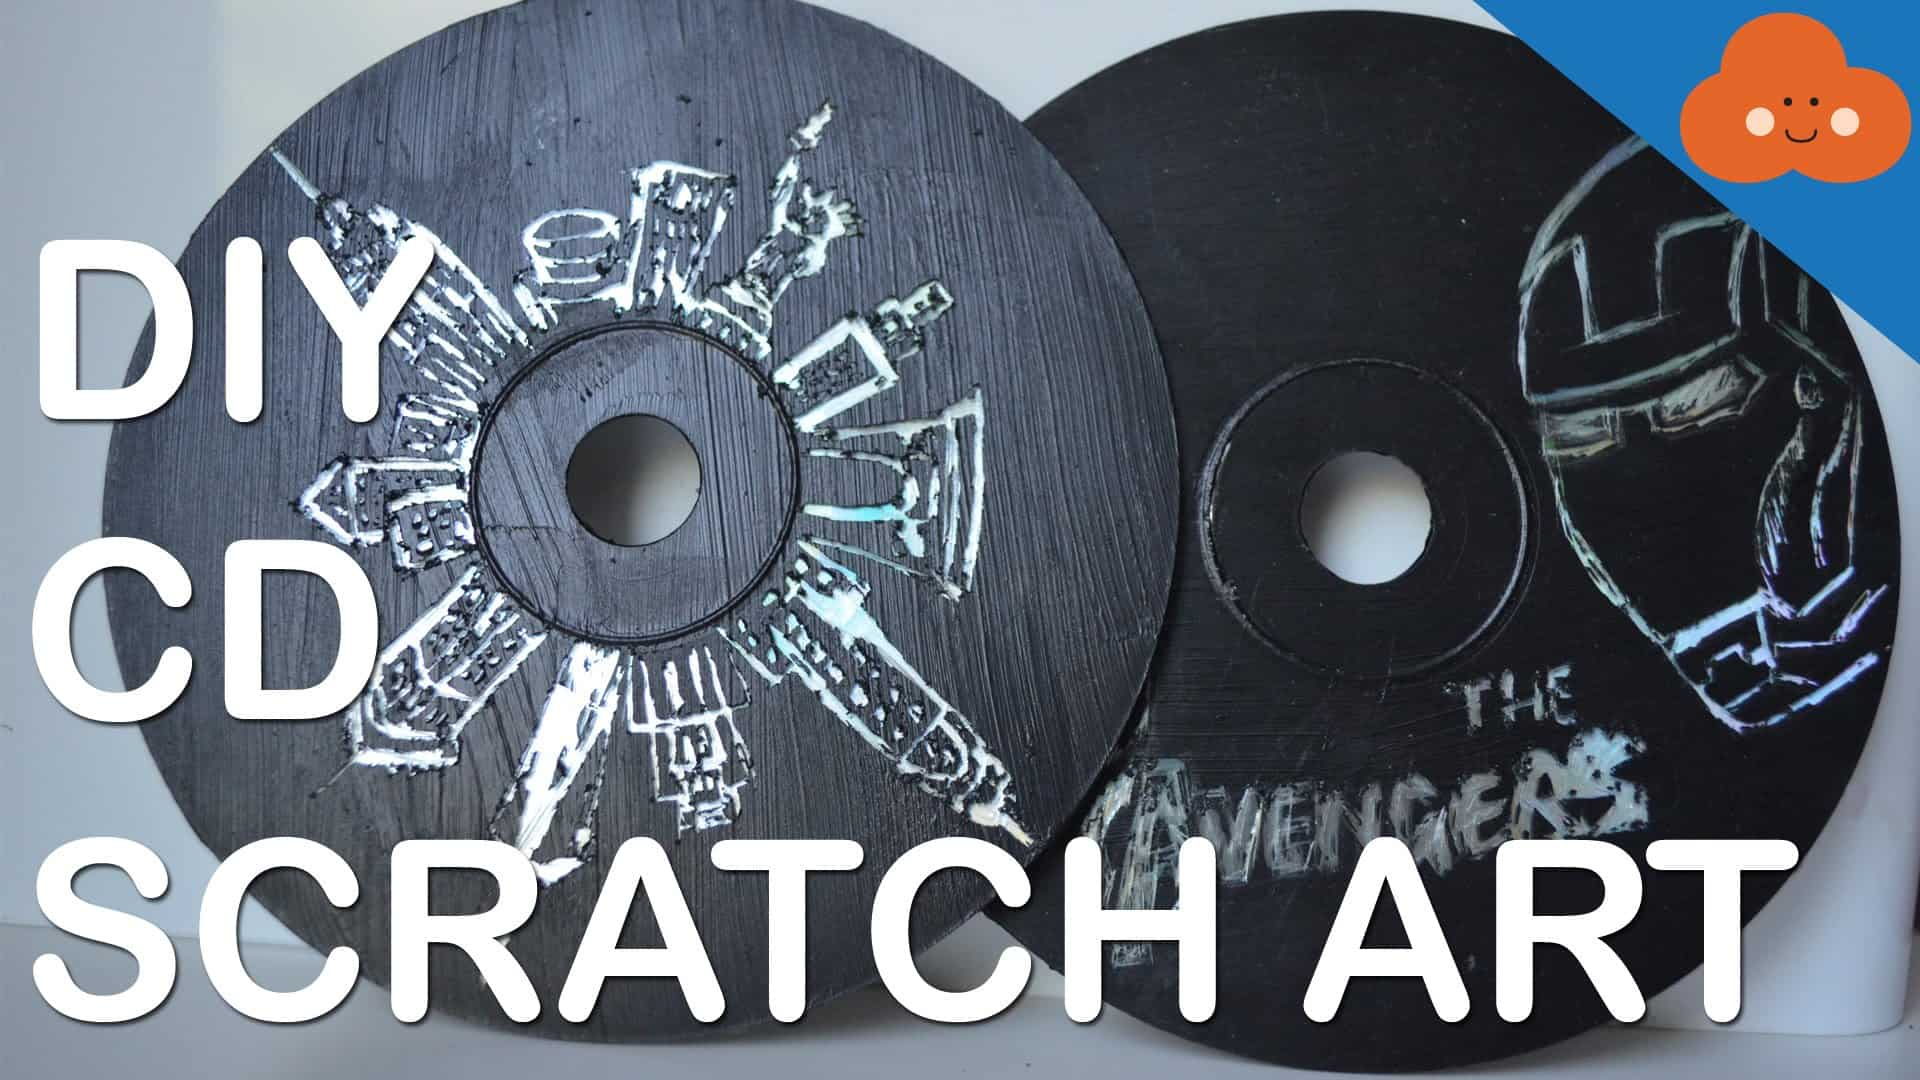 diy-scratched-cd-art